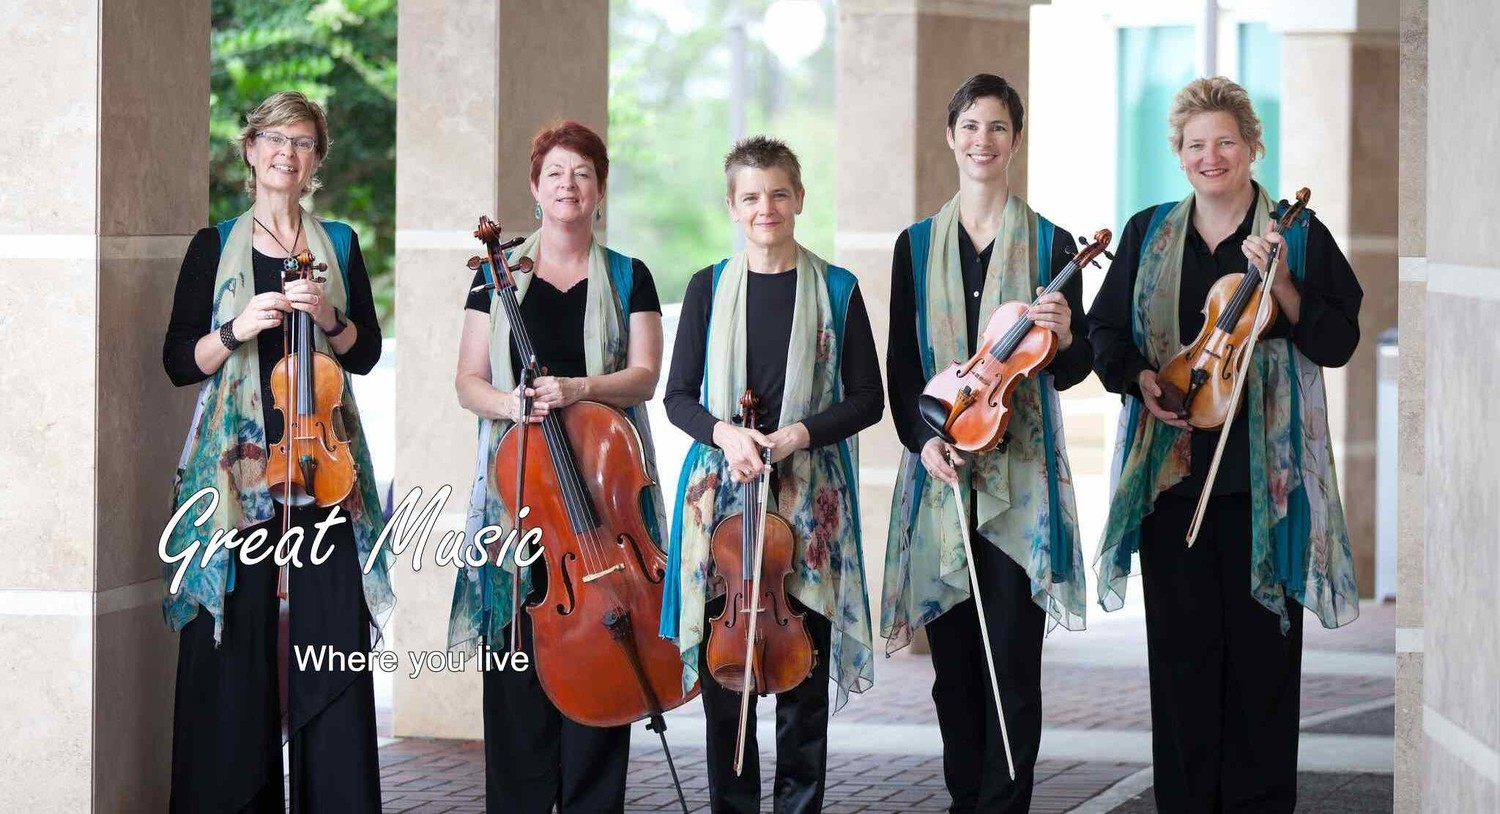 Pictured is Annie Hertler, Laurie Casseday, Susan Pardue, Anna Genest and Patrice Evans of the Florida Chamber Music Project, which kicks off its 2018-2019 season Sept. 30 at the Ponte Vedra Concert Hall.